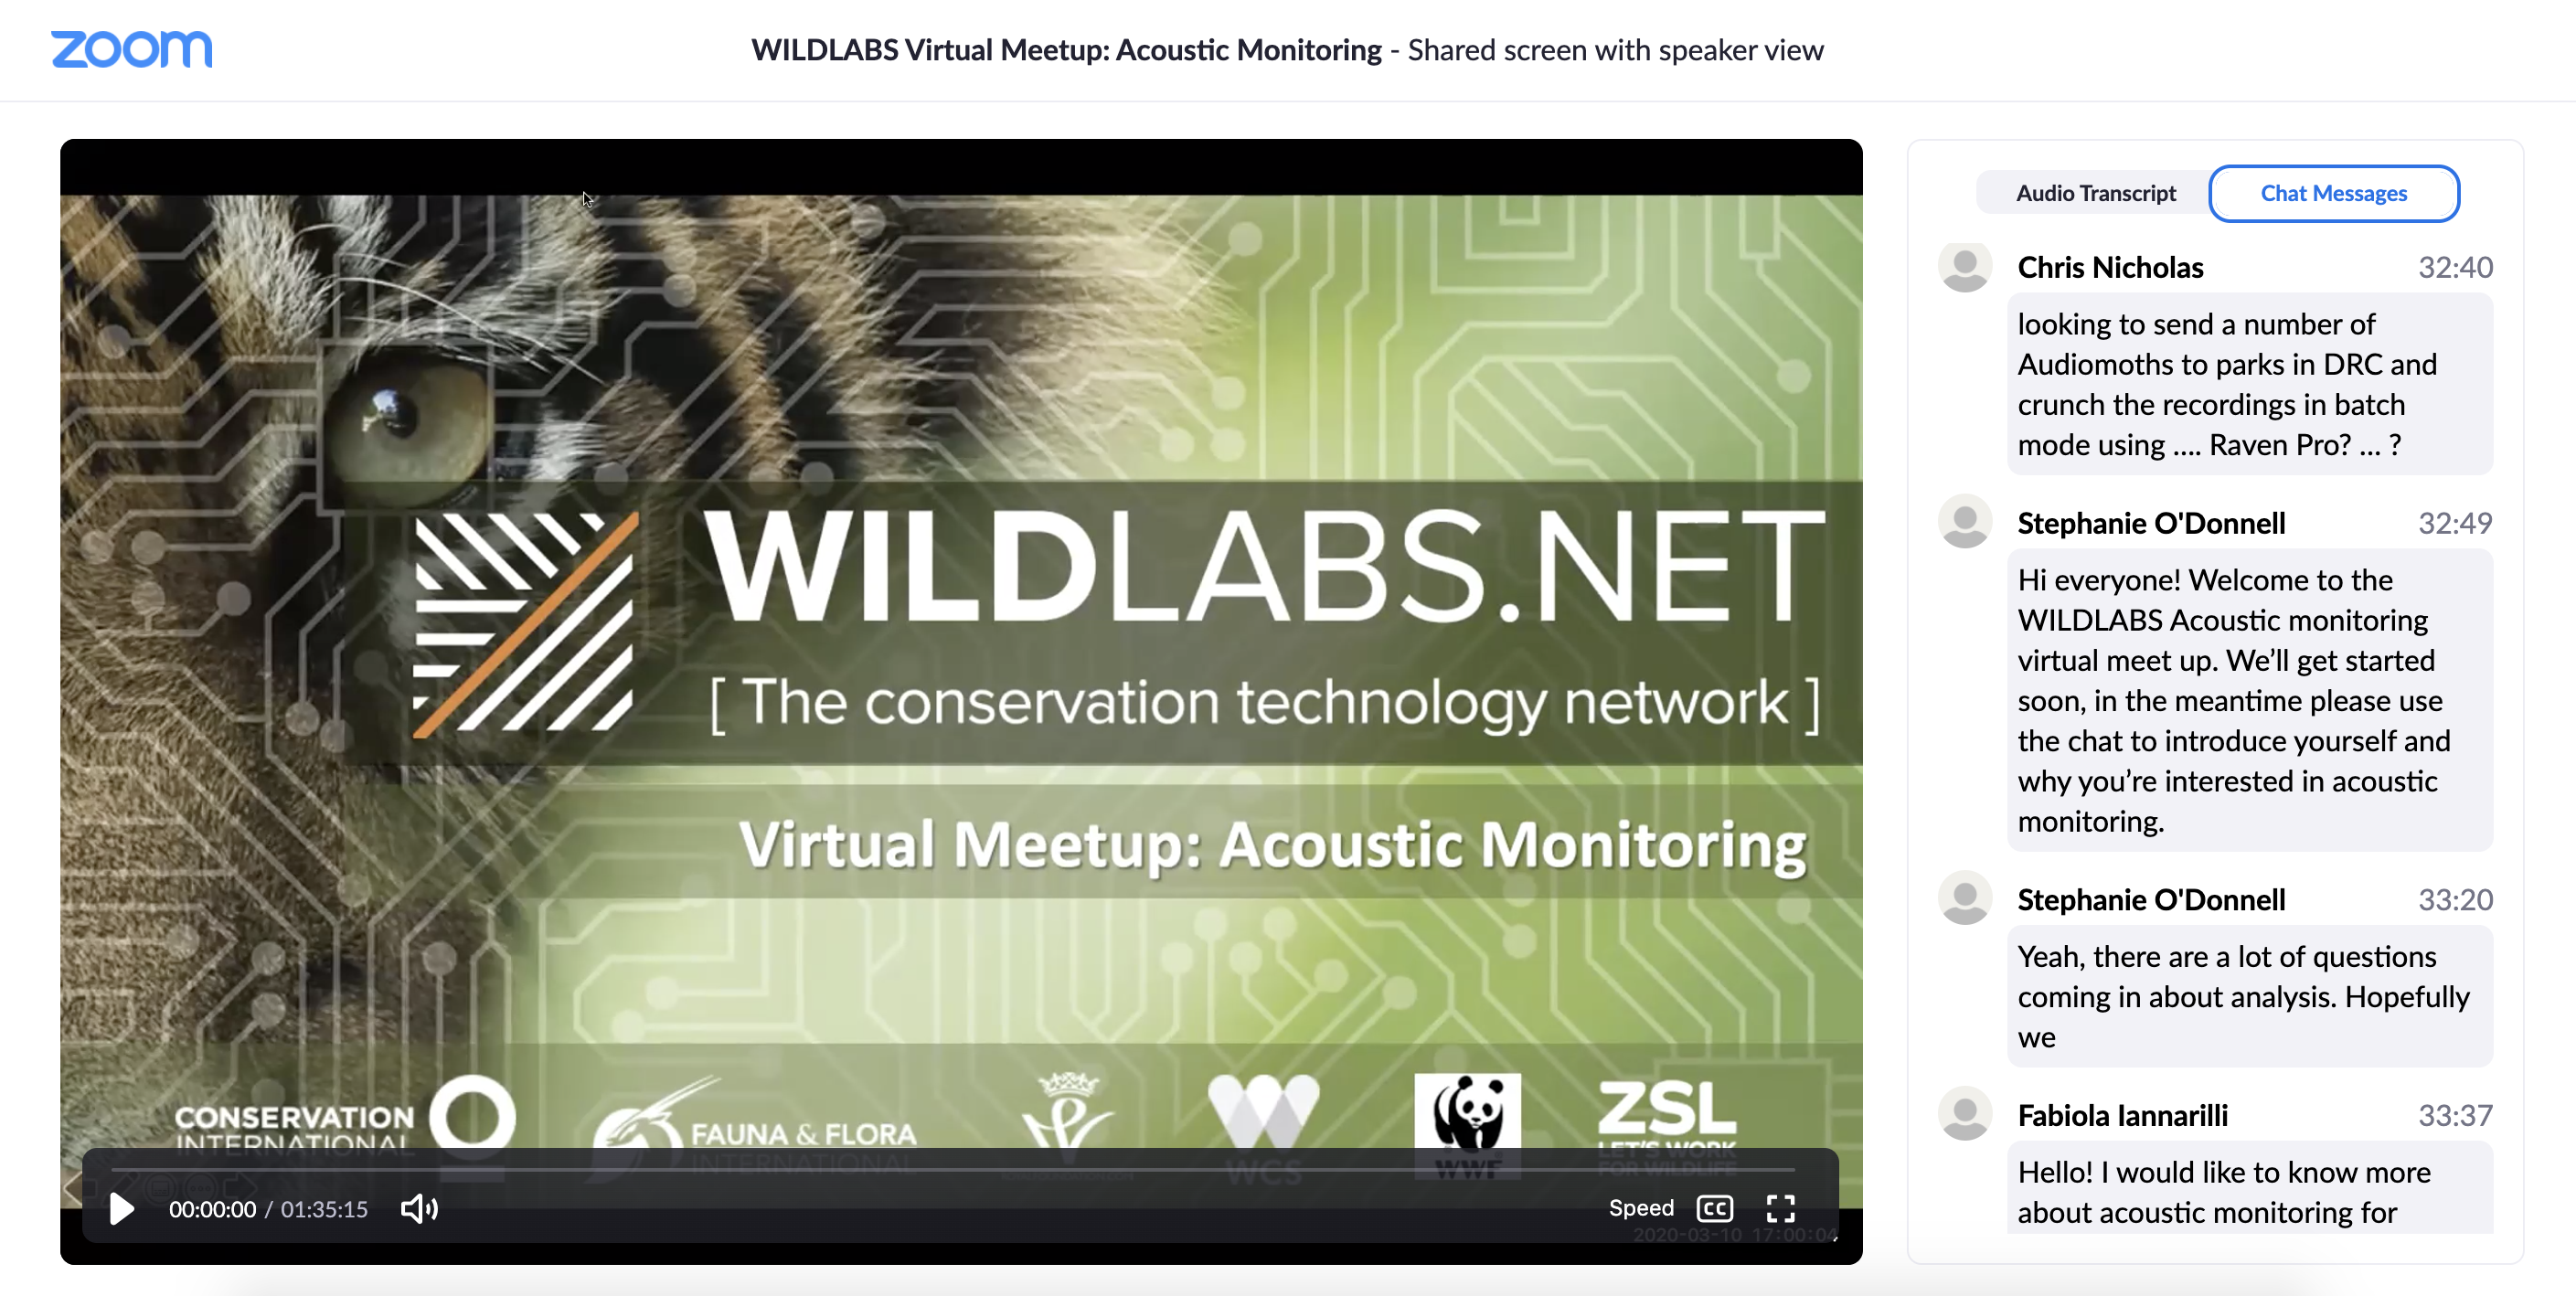 Acoustic Monitoring Meetup Link to Video Recording